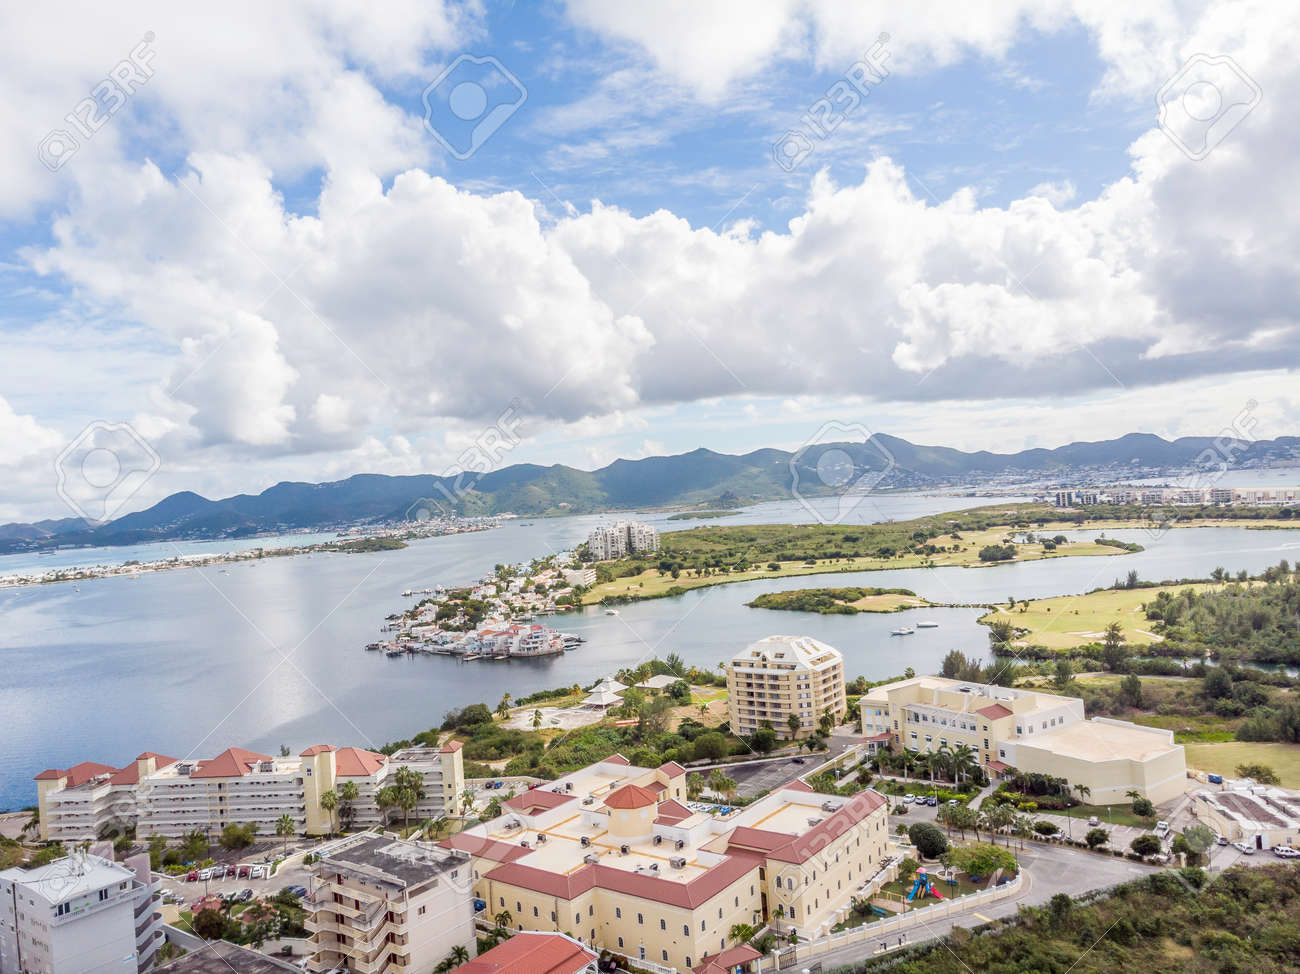 The caribbean island of St.Maarten landscape and Citiscape. - 163350219